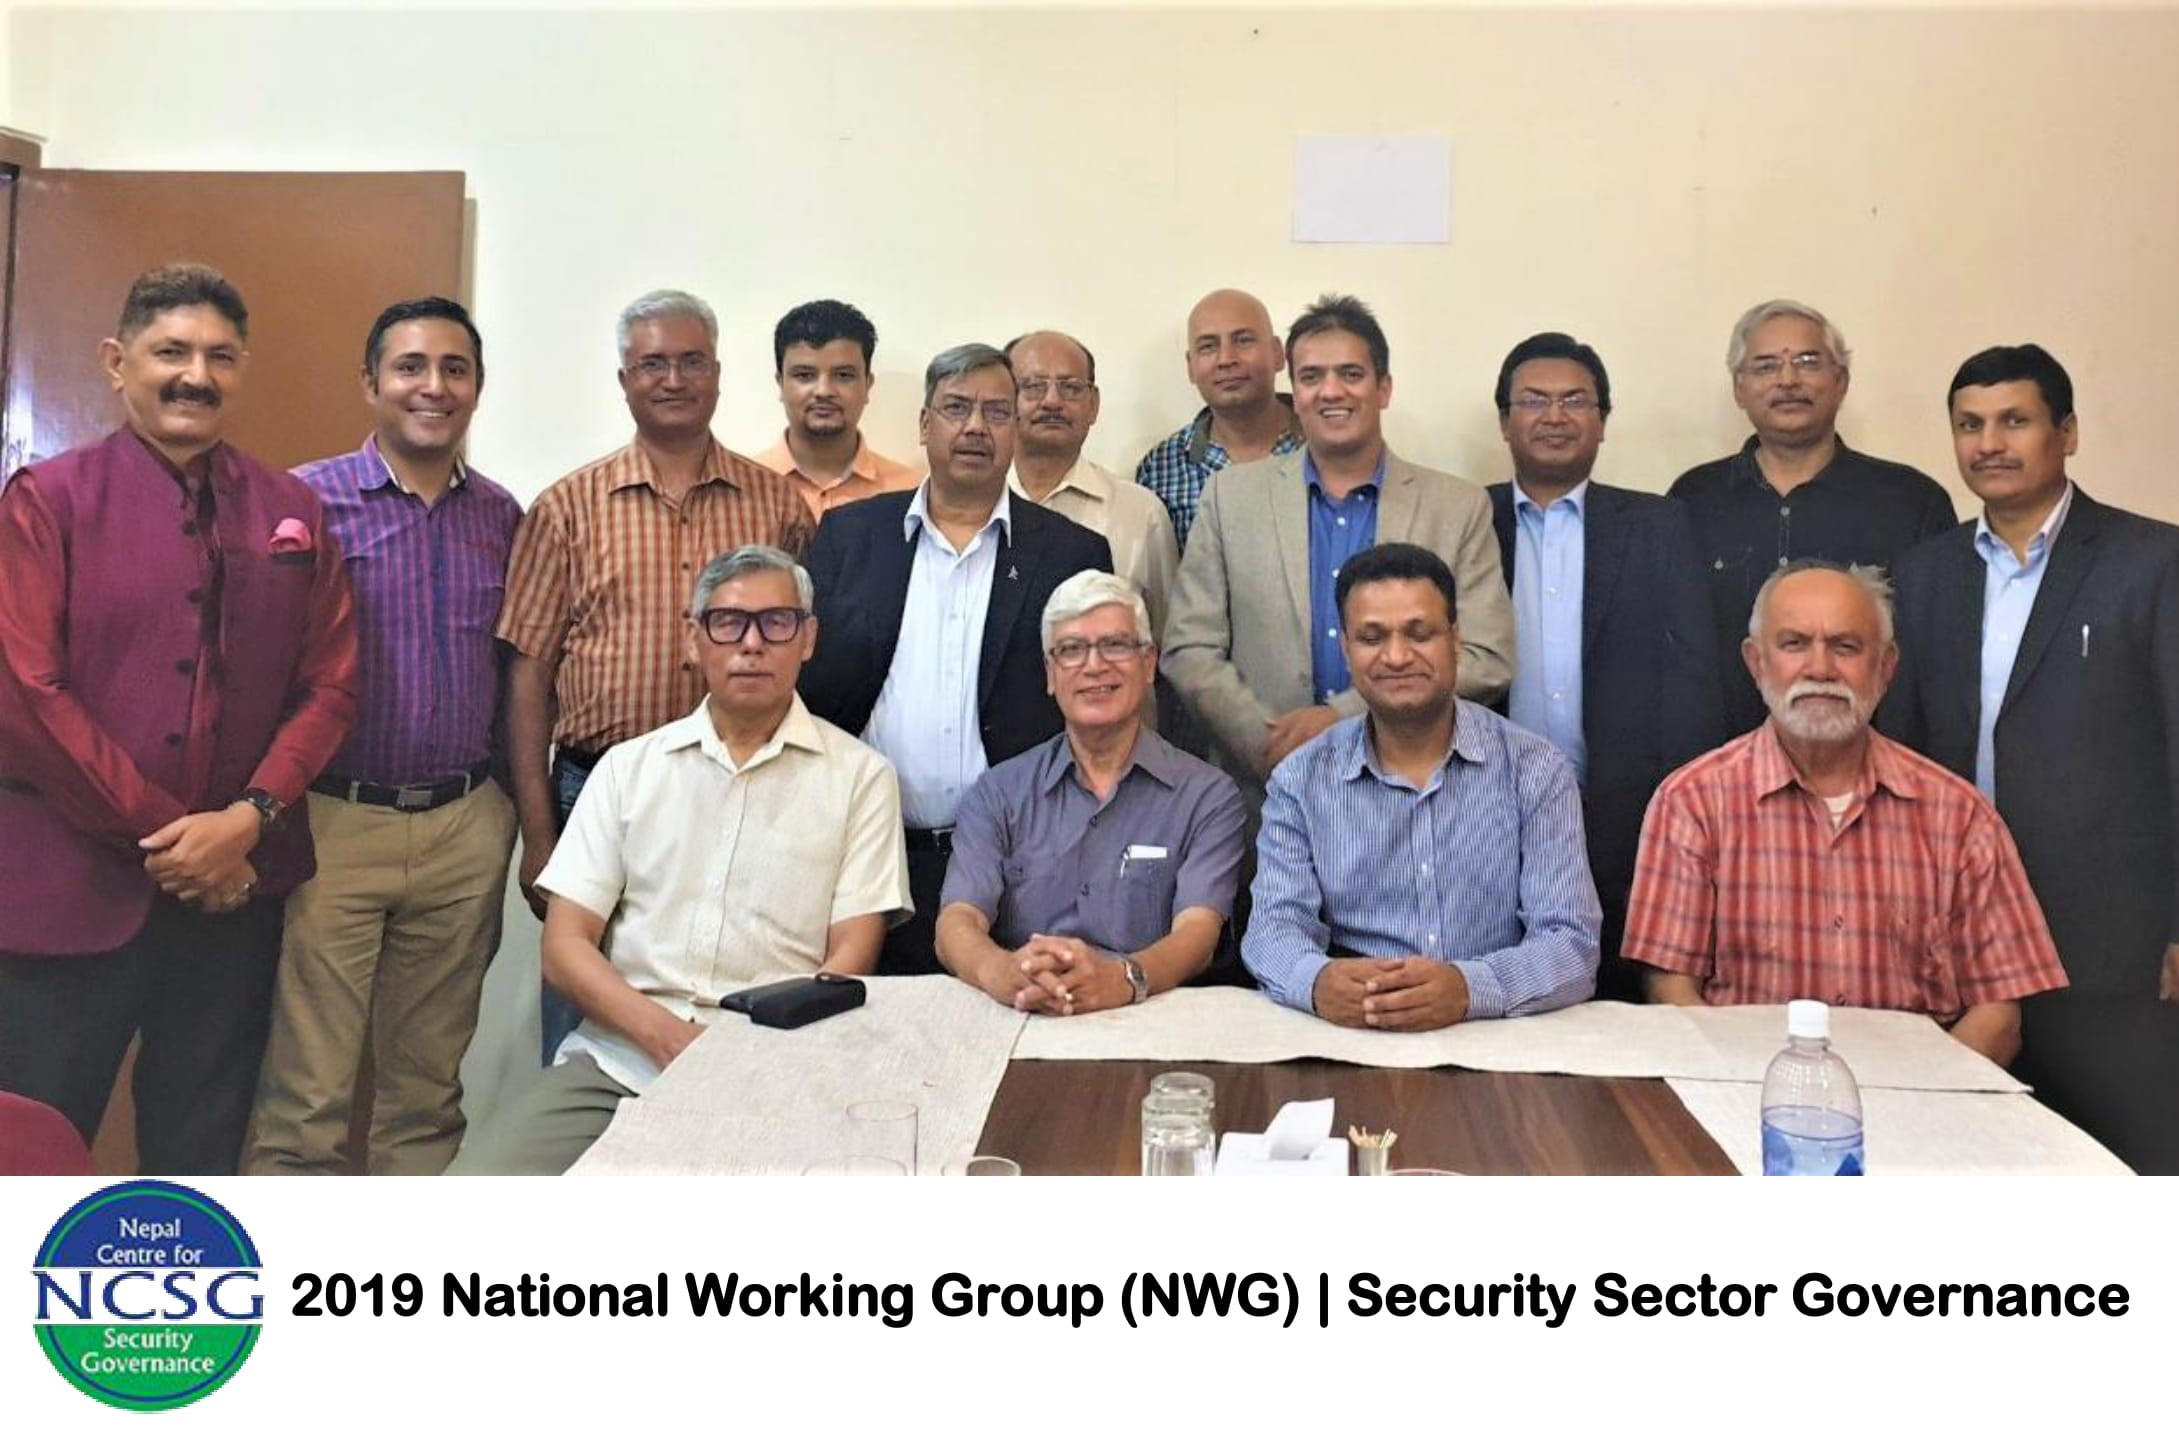 2019 National Working Group (NWG) | Security Sector Governance